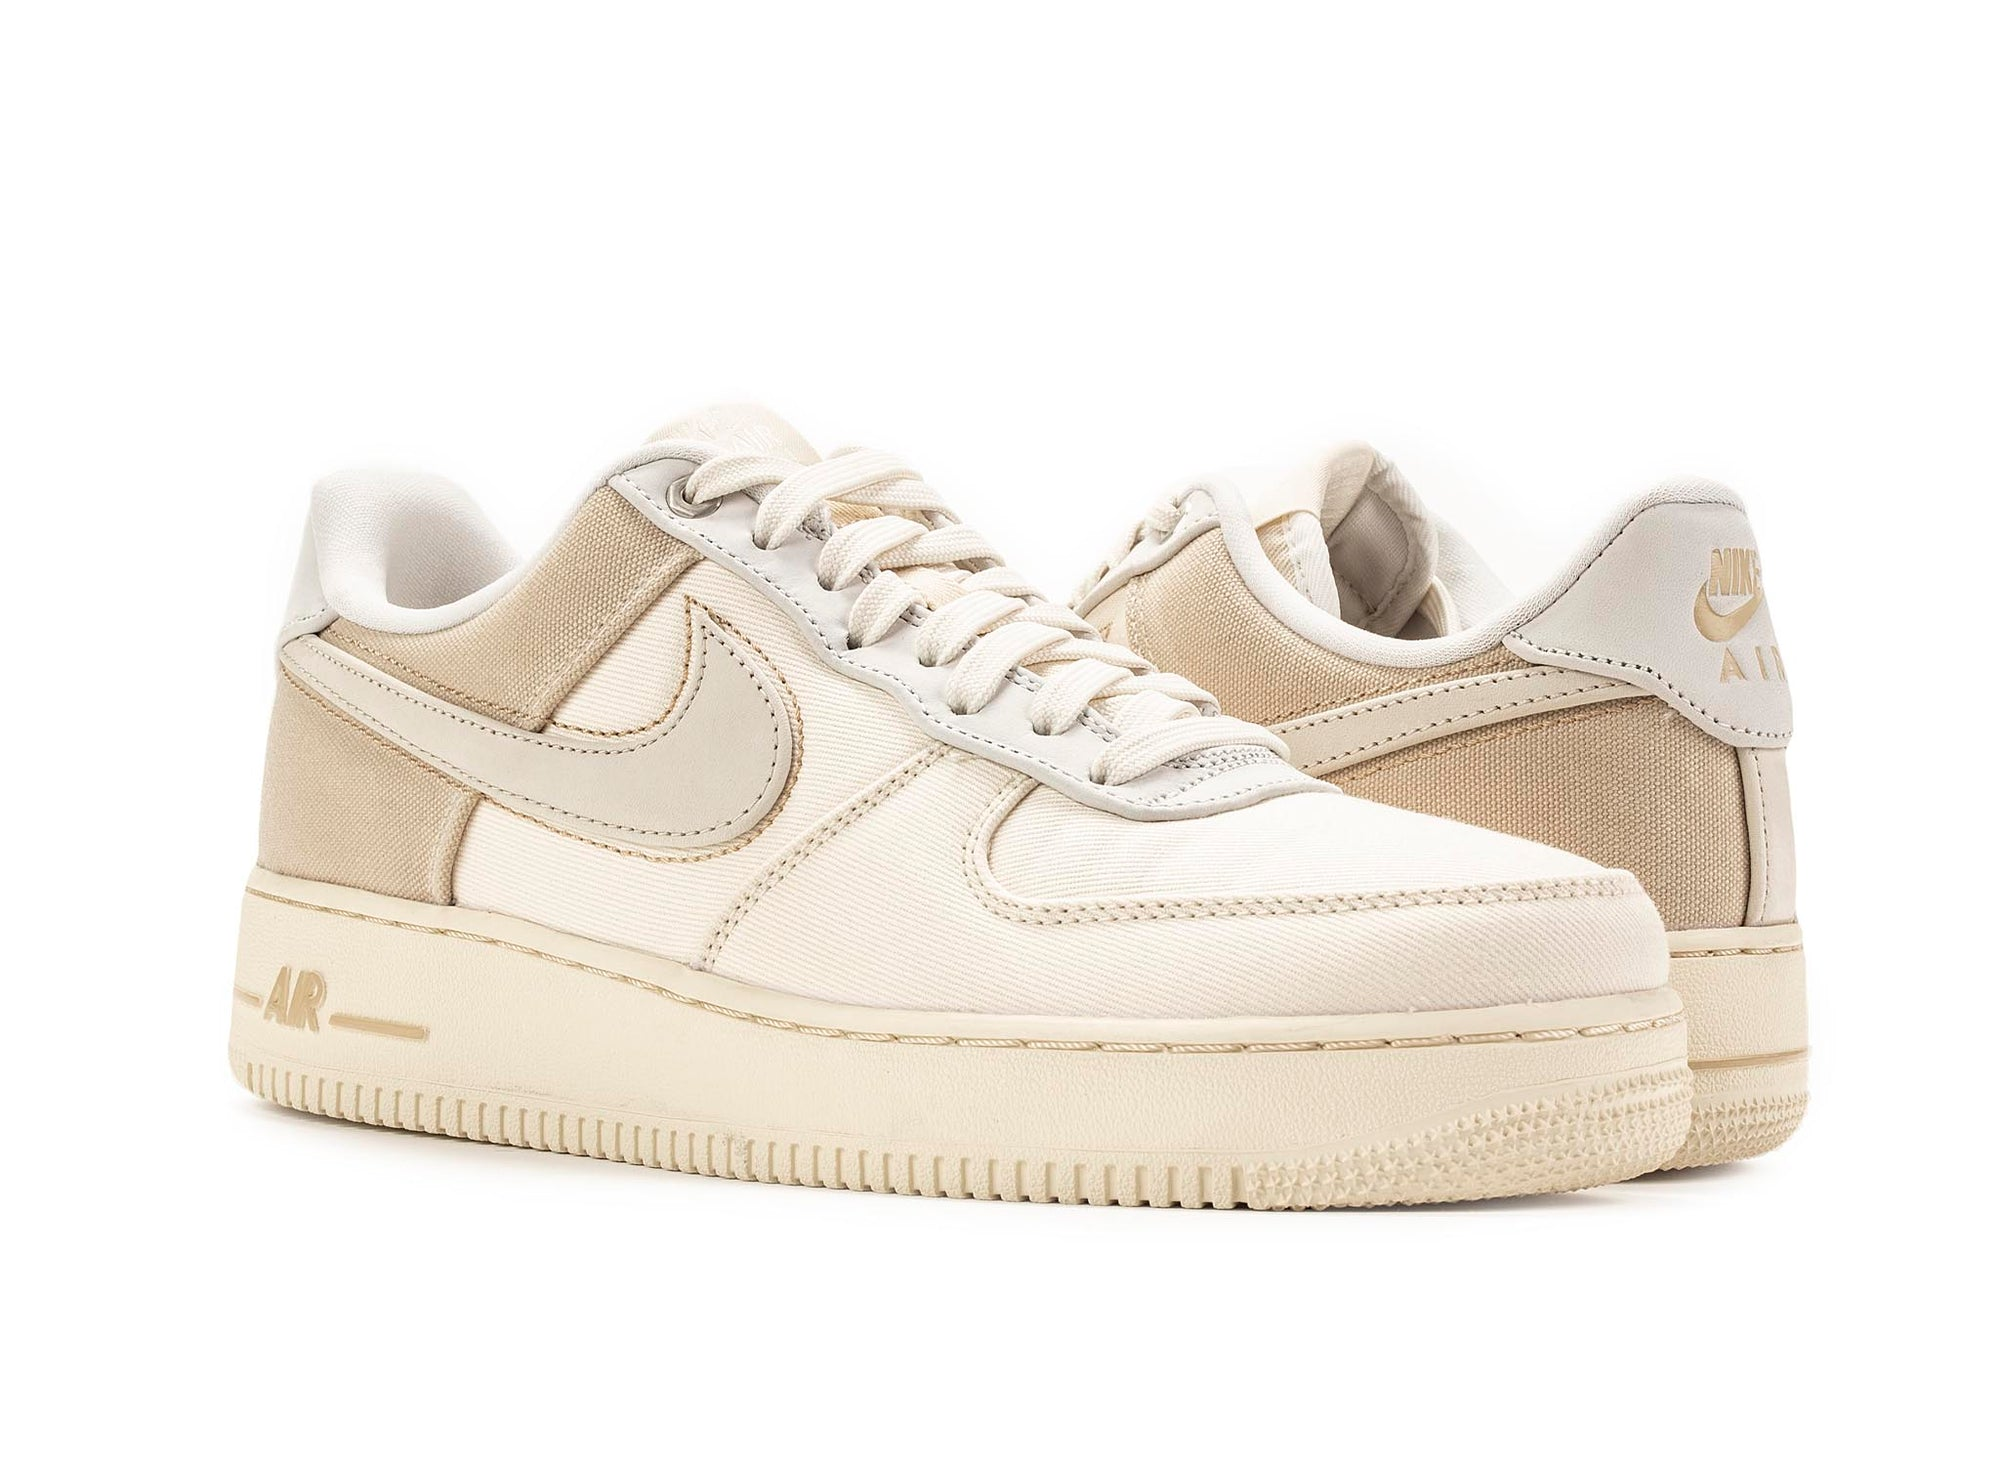 grand choix de 357bb f3834 Nike Air Force 1 '07 Premium 'Pale Ivory'